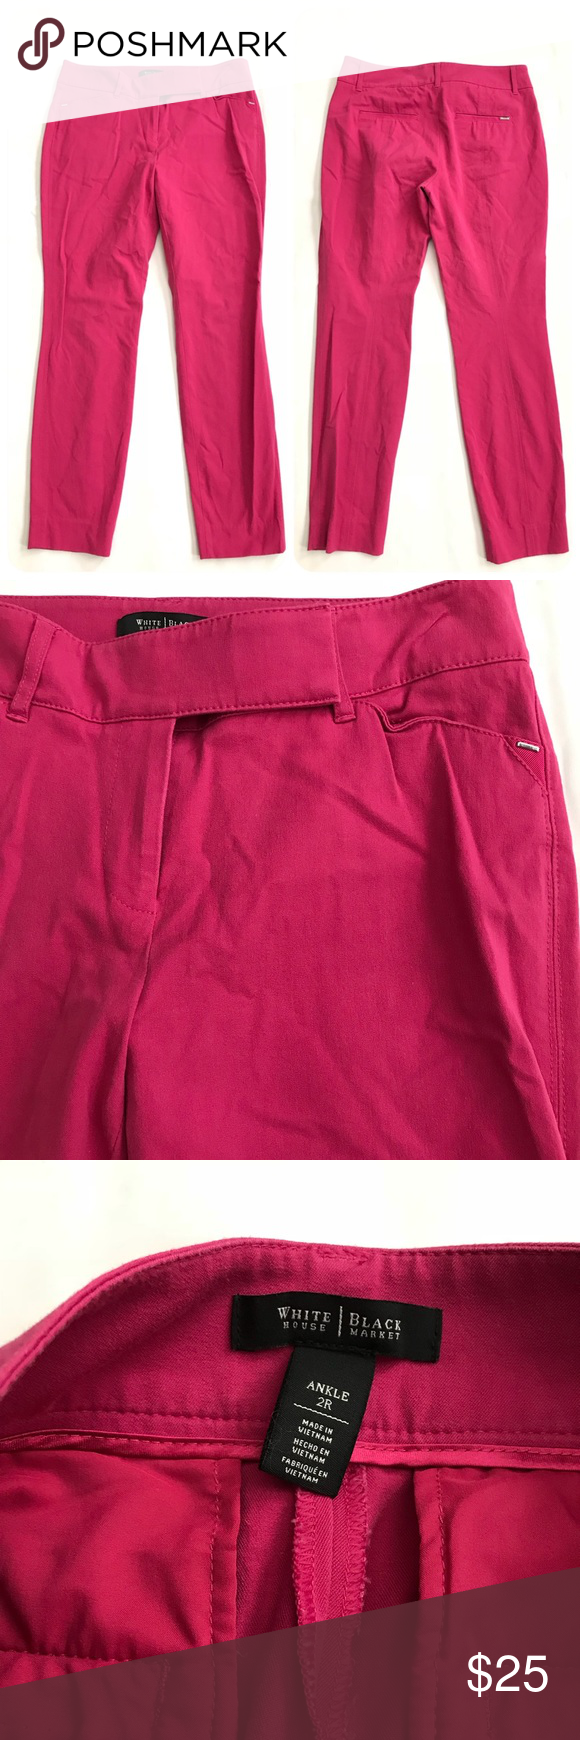 """White House Black Market Pink Ankle Pants Size 2R White House Black Market Pink Ankle Pants Size 2R  -  Two Front & Two Back Pockets -  Tapered  -  52% Cotton 41% Rayon 7% Spandex -  Size 2R     Waist Laying flat 15""""     Inseam 27.5""""     Ankle Opening 5.5""""  Thanks for visiting! 💕💕 White House Black Market Pants Ankle & Cropped"""